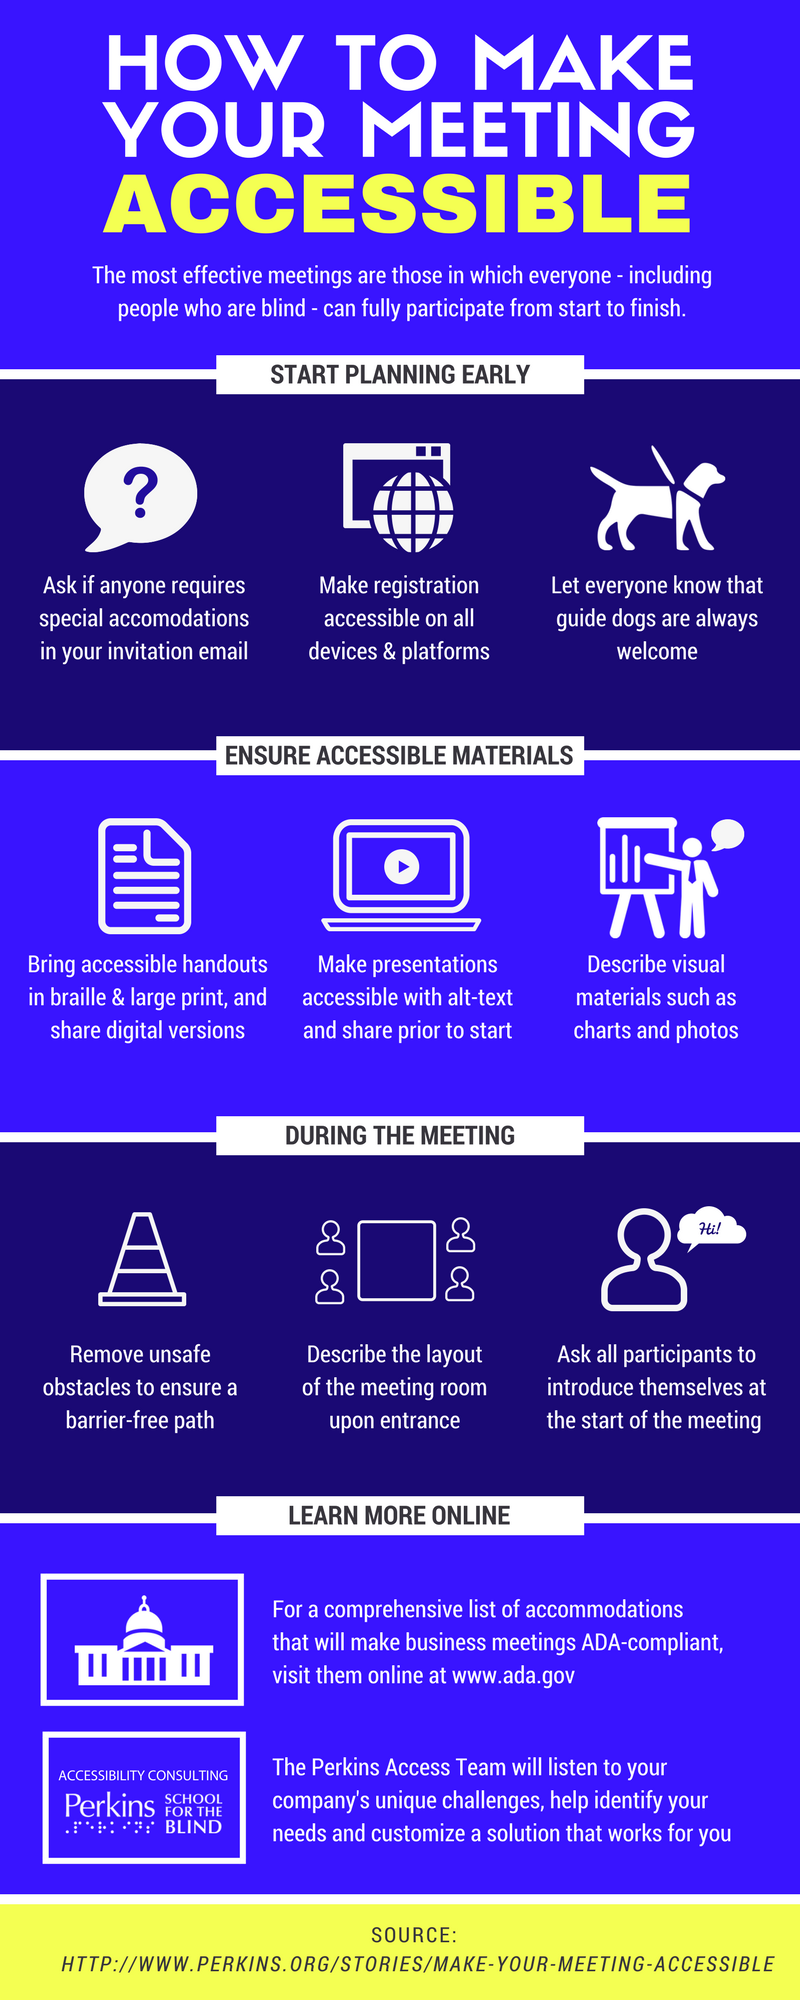 How to Make Your Meeting Accessible Infographic